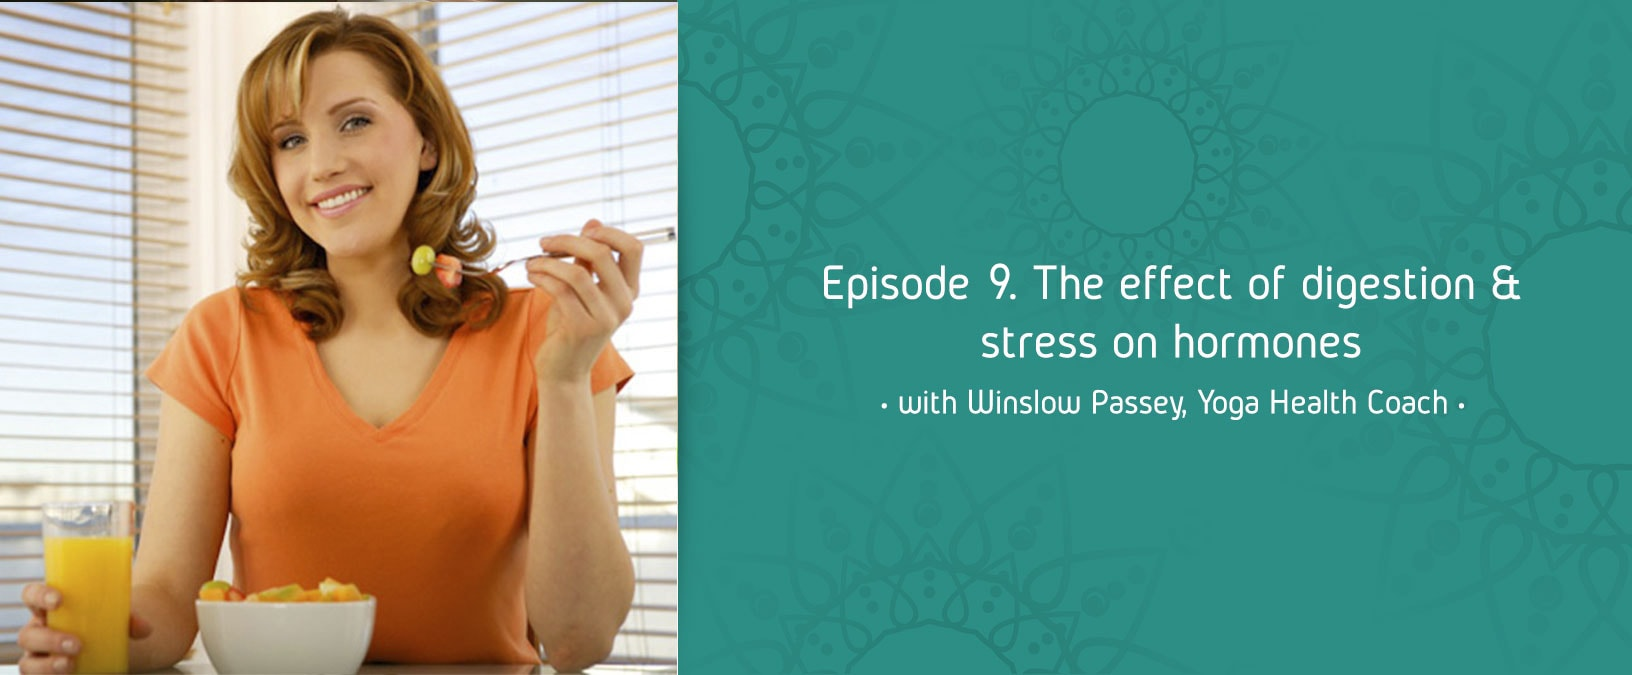 Episode 3. The effect of digestion & stress on hormones